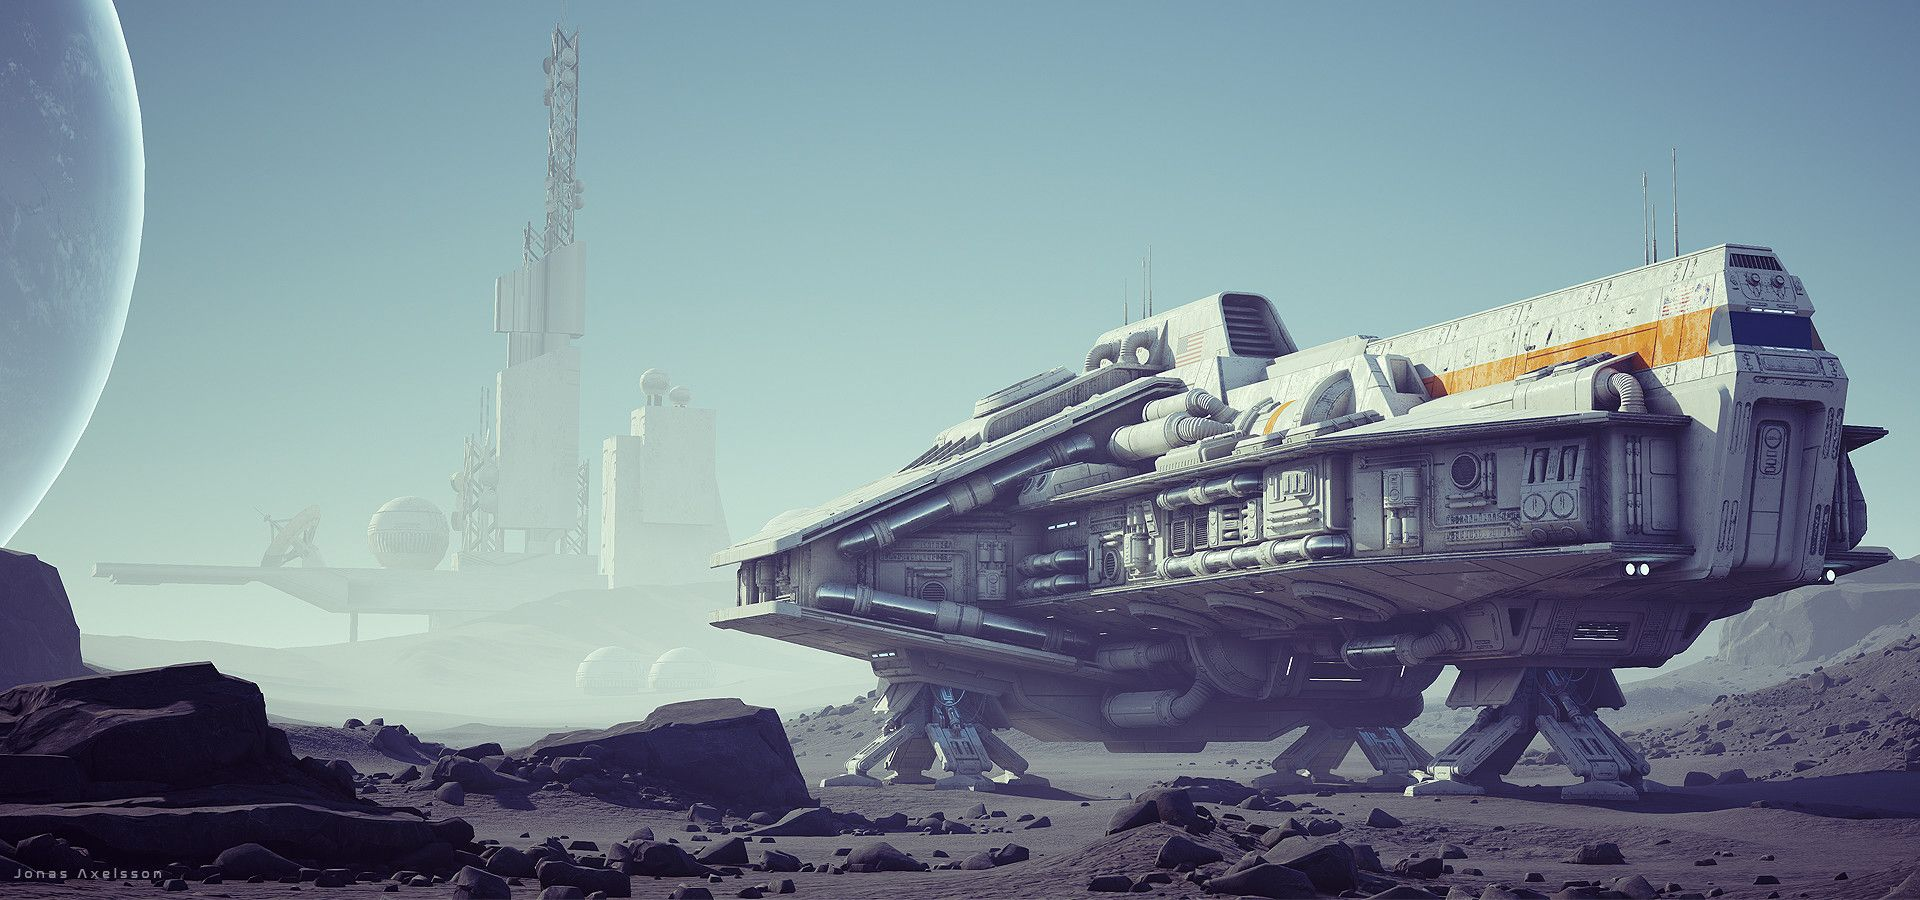 Been working on this on and off for some time. Initially set on the moon but I realized a planet with atmosphere is more interesting (might still revisit the moon idea though). I tried to build it as modular as possible with about 5 greeble modules used for the details. The ship uses one 4k texture. Inspired by the the UT map Outpost 23